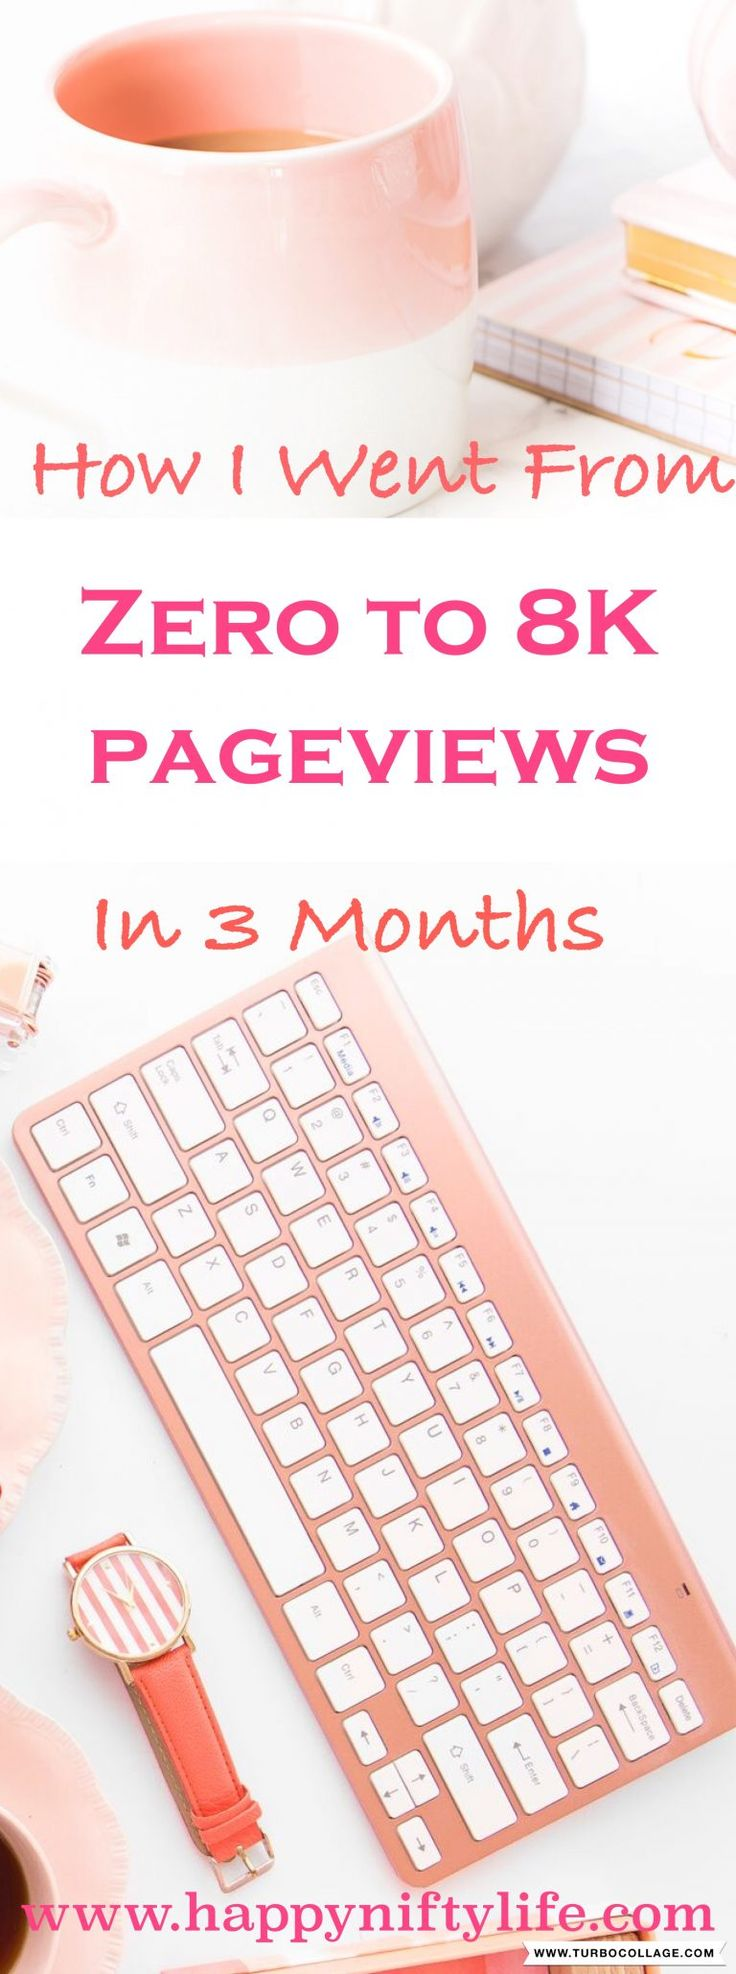 Here is my recent blog progress report. How I have learned to increase blog traffic as a new blogger. #boostblogtraffic #increaseblogtraffic #pageviews #pinteresttips #pinteresttraffic #blogtraffic #lifestyleblogger #lifestyleblog